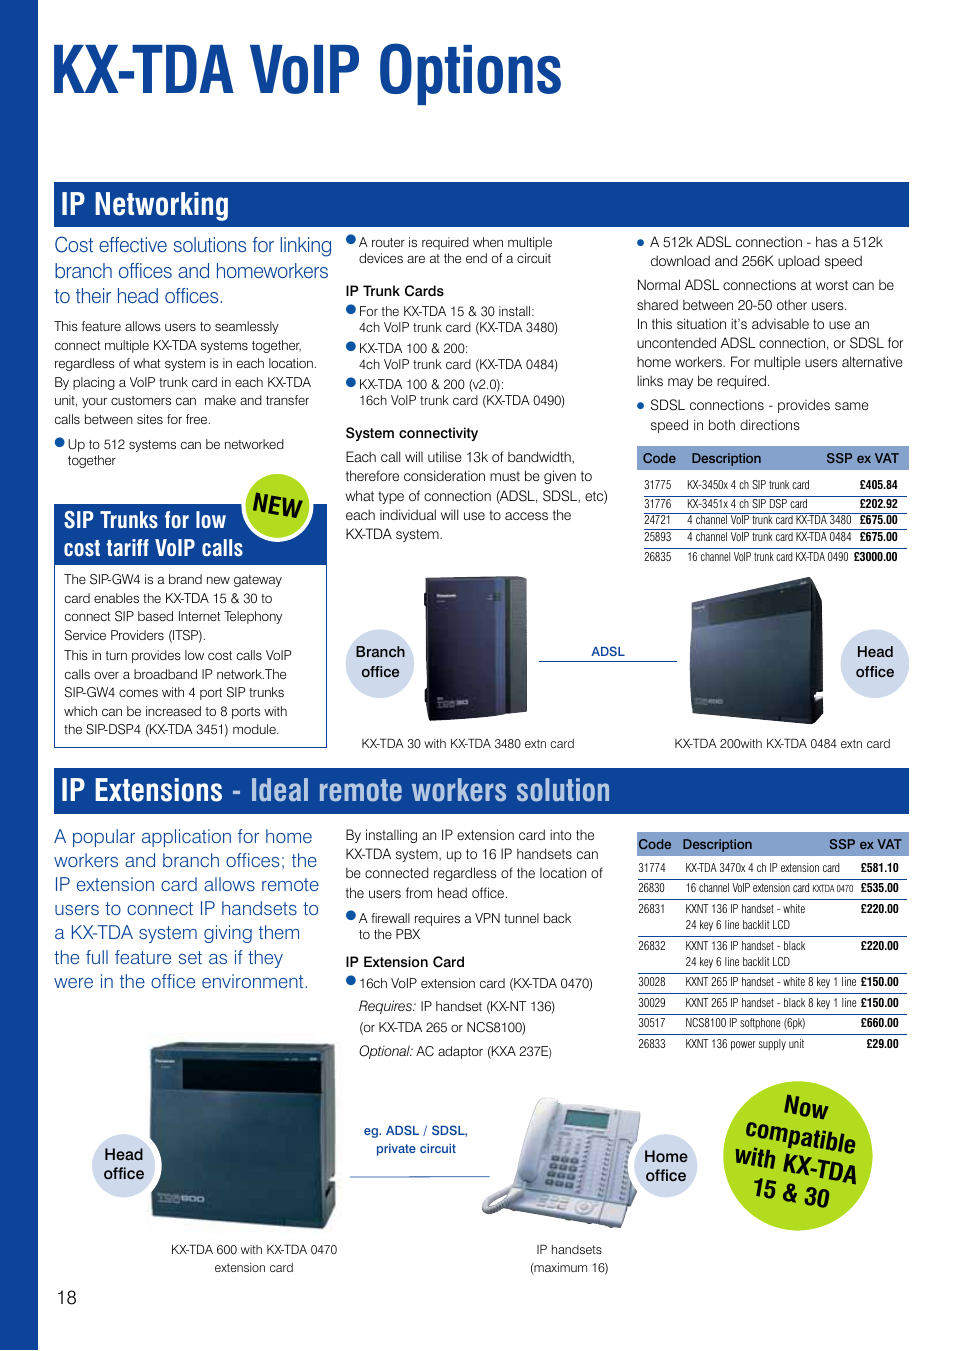 Kx-tda voip options, Ip networking, Ip extensions - ideal remote ...